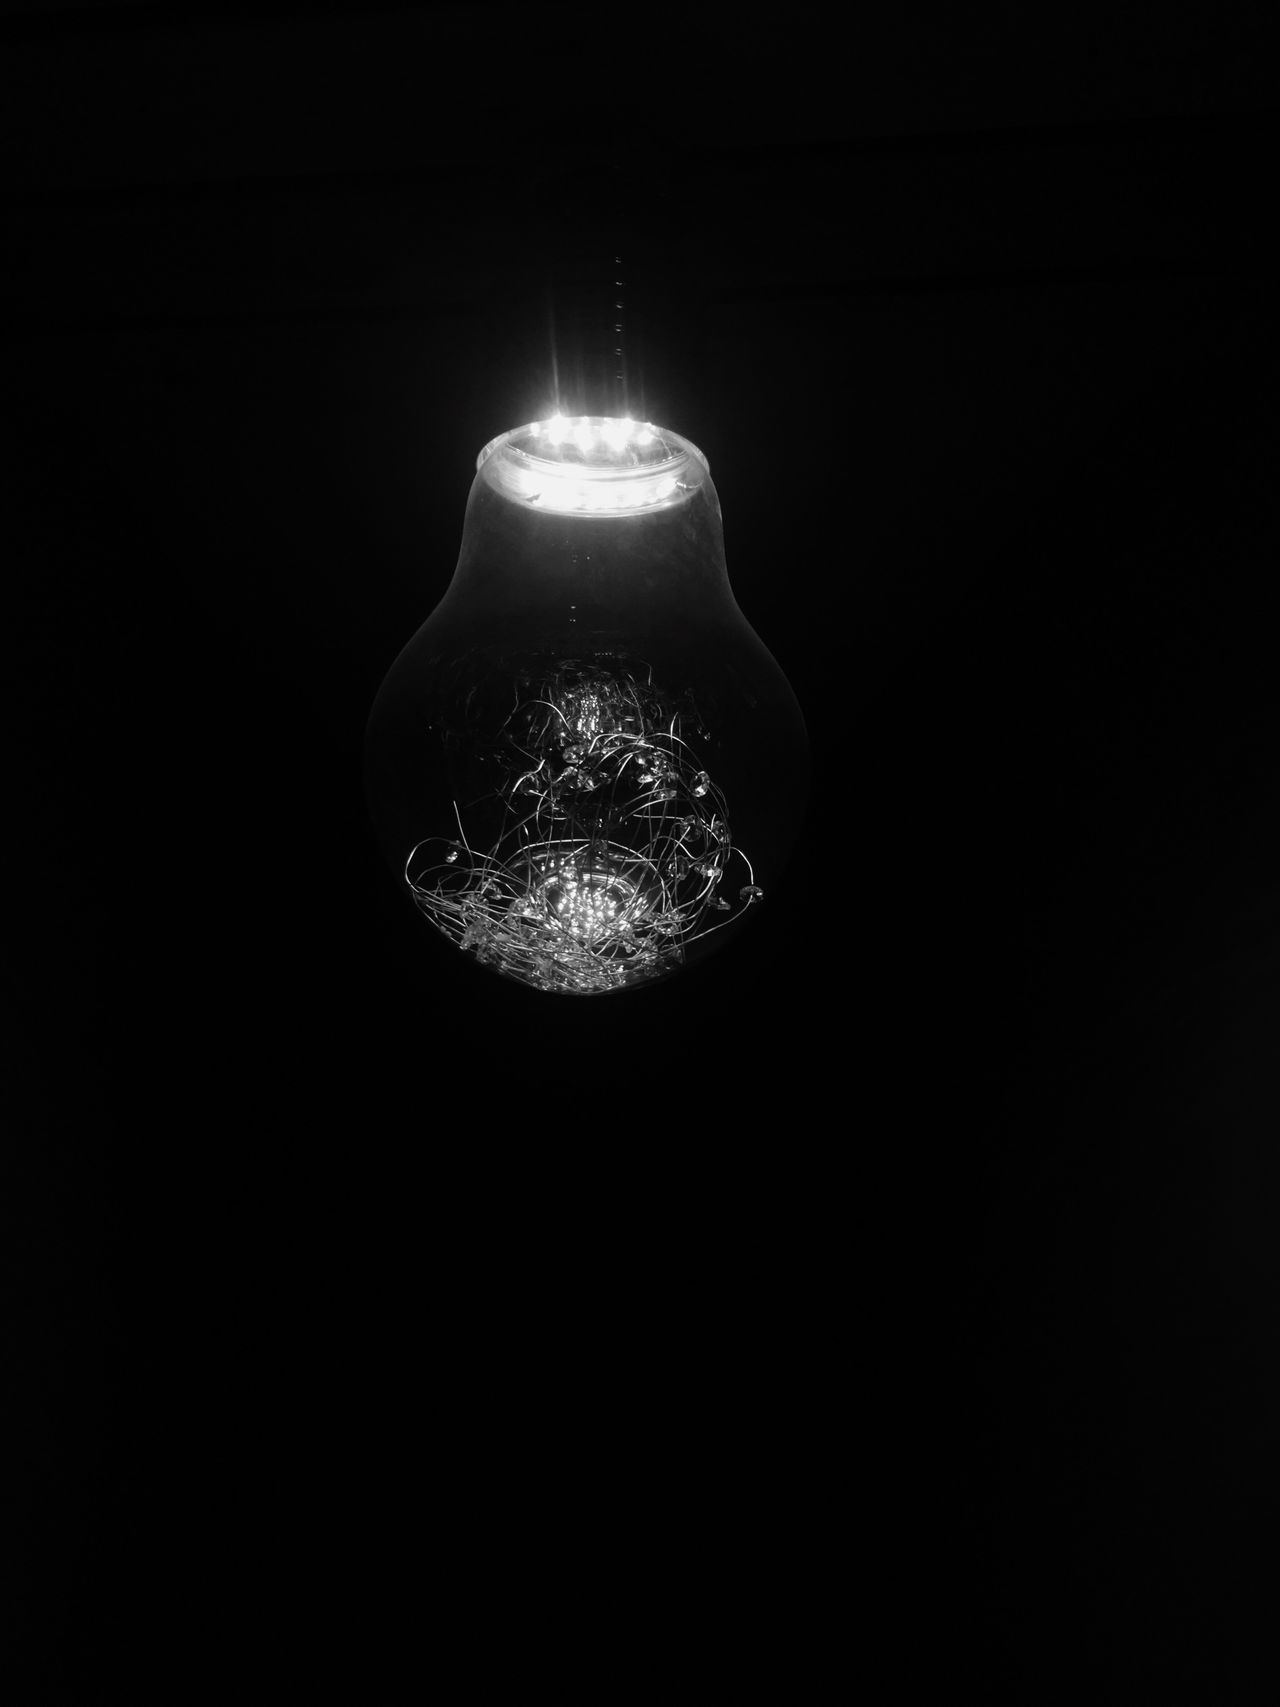 You must question every photograph and its detail then only good result can be produced. Lighting Equipment Electricity  Illuminated Light Bulb Low Angle View Hanging Close-up No People Studio Shot Indoors  Filament Black Background Unique Perspectives Monochrome Photography Blackandwhite Photography EyeEm Vision Shadows & Lights Space Exploration